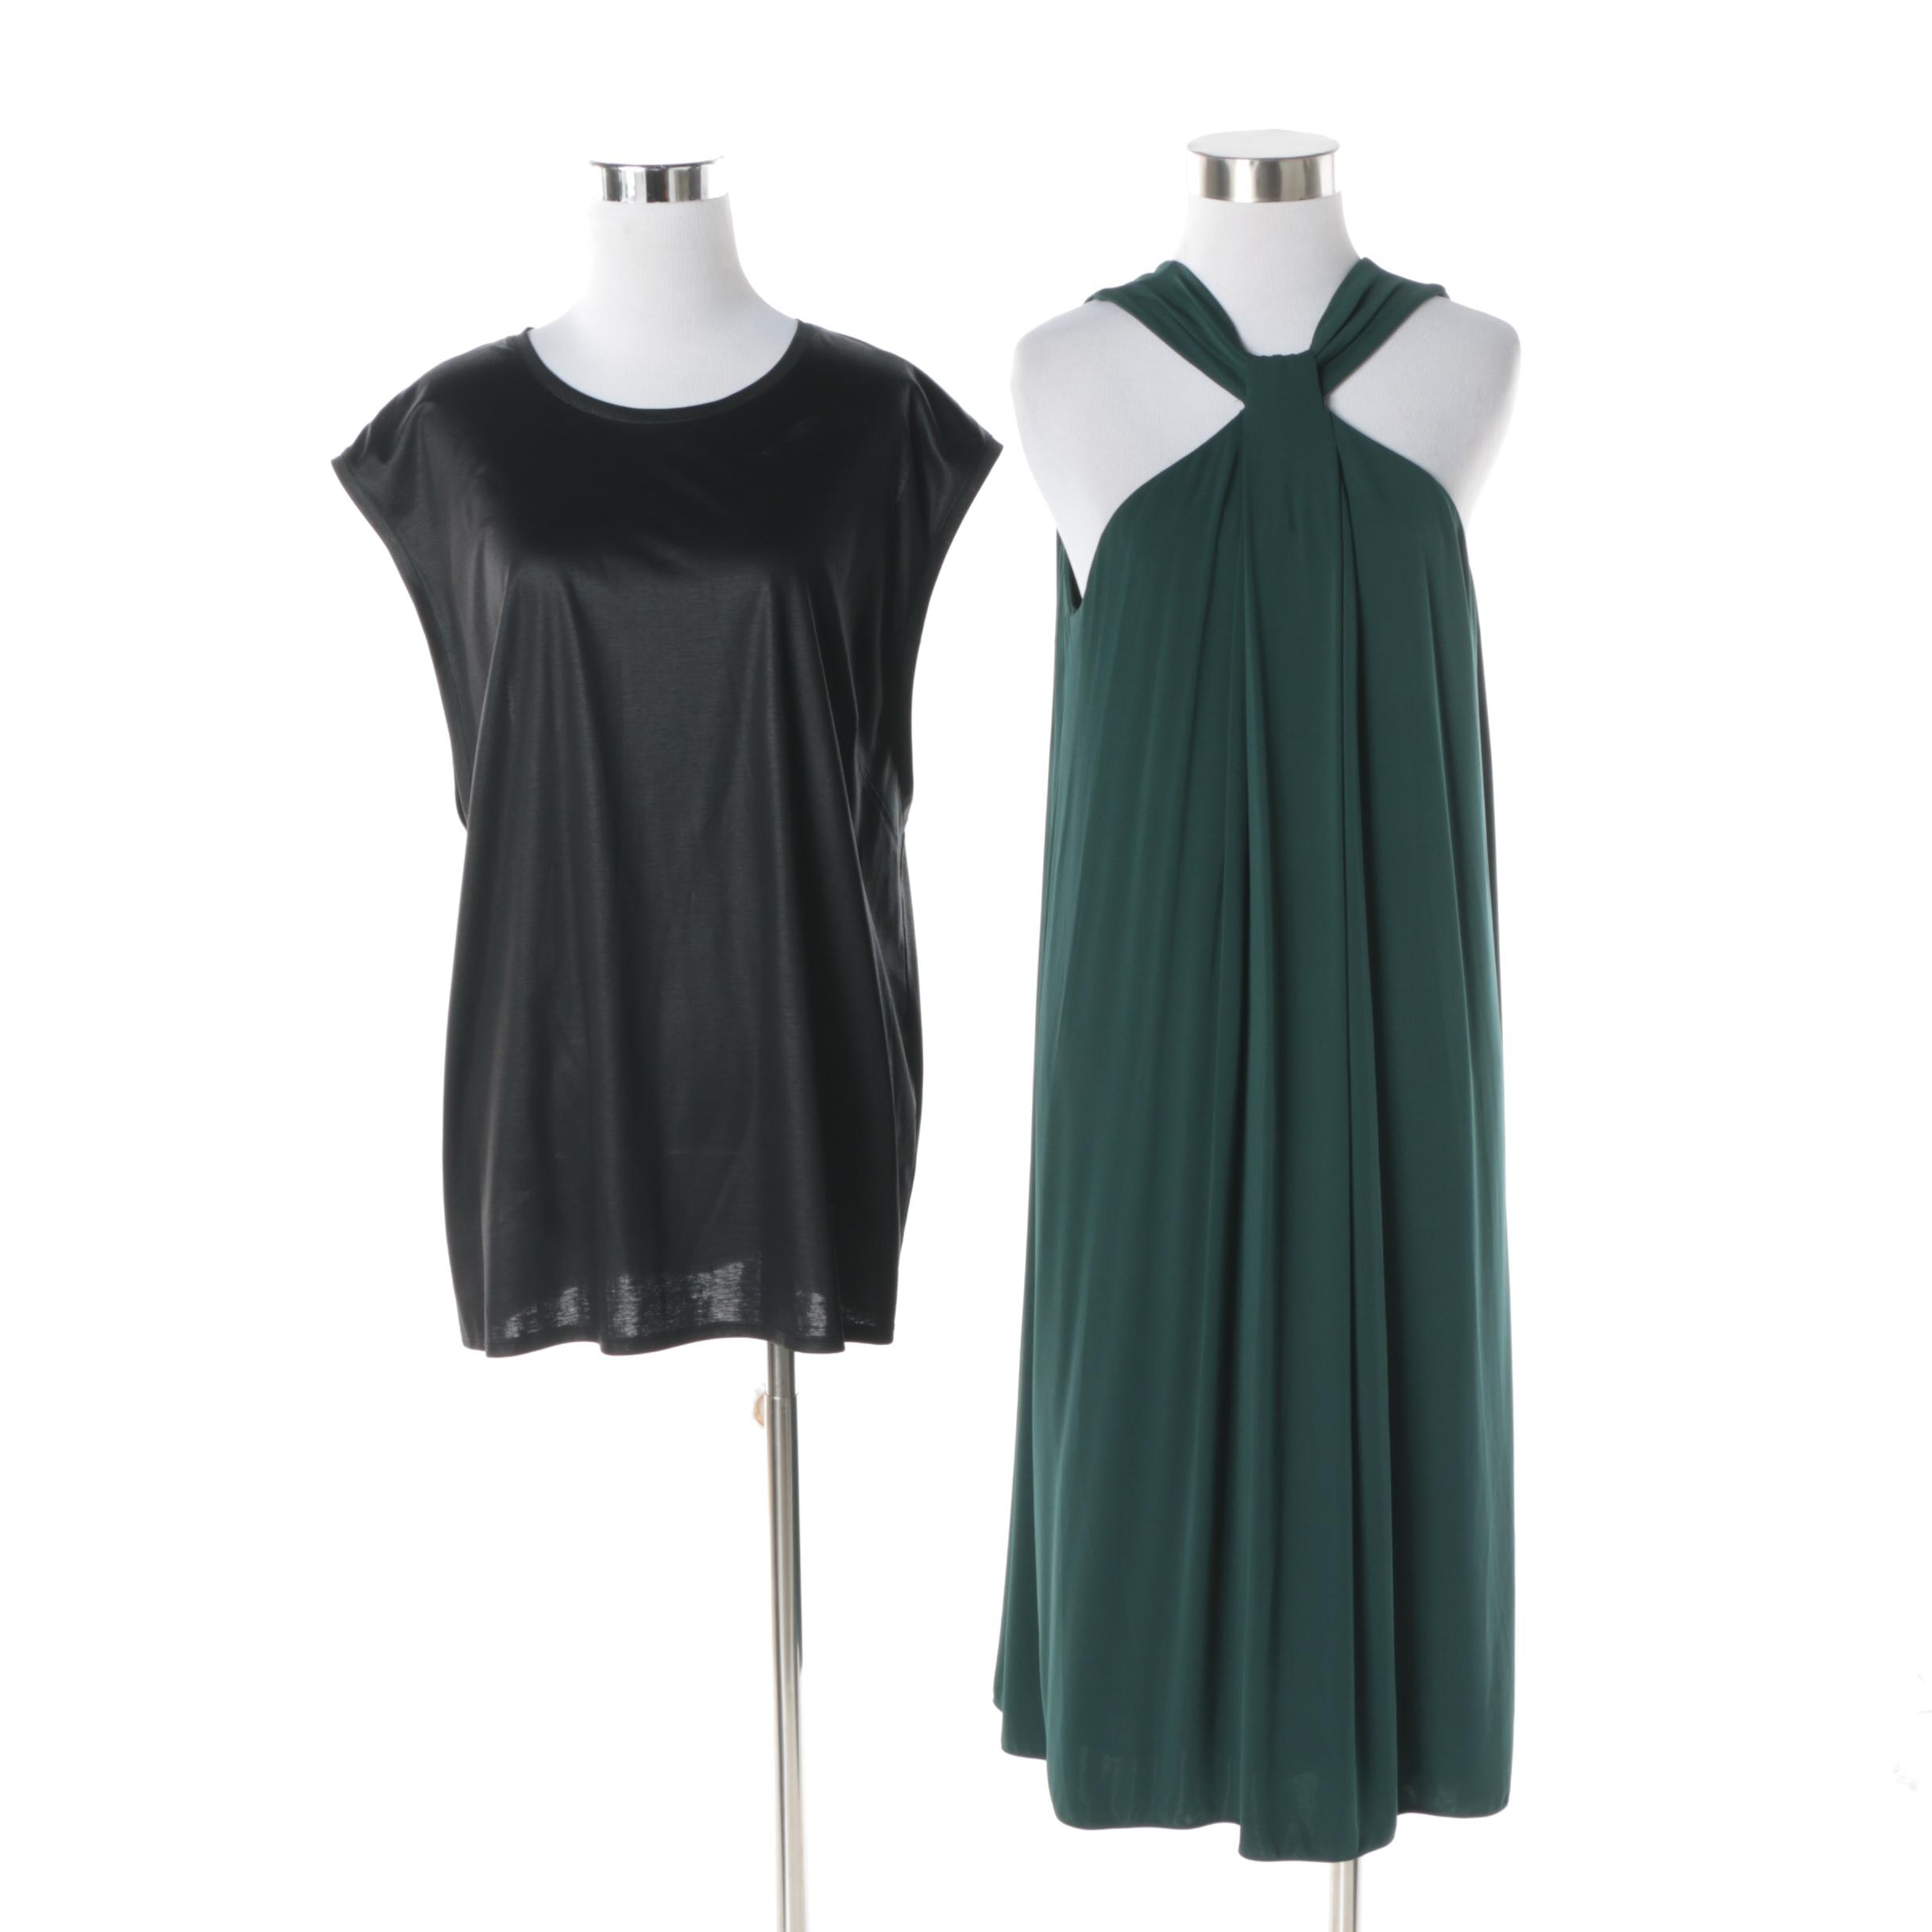 Armani Collezioni Green Cocktail Dress and Helmut Lang Black Sleeveless Blouse